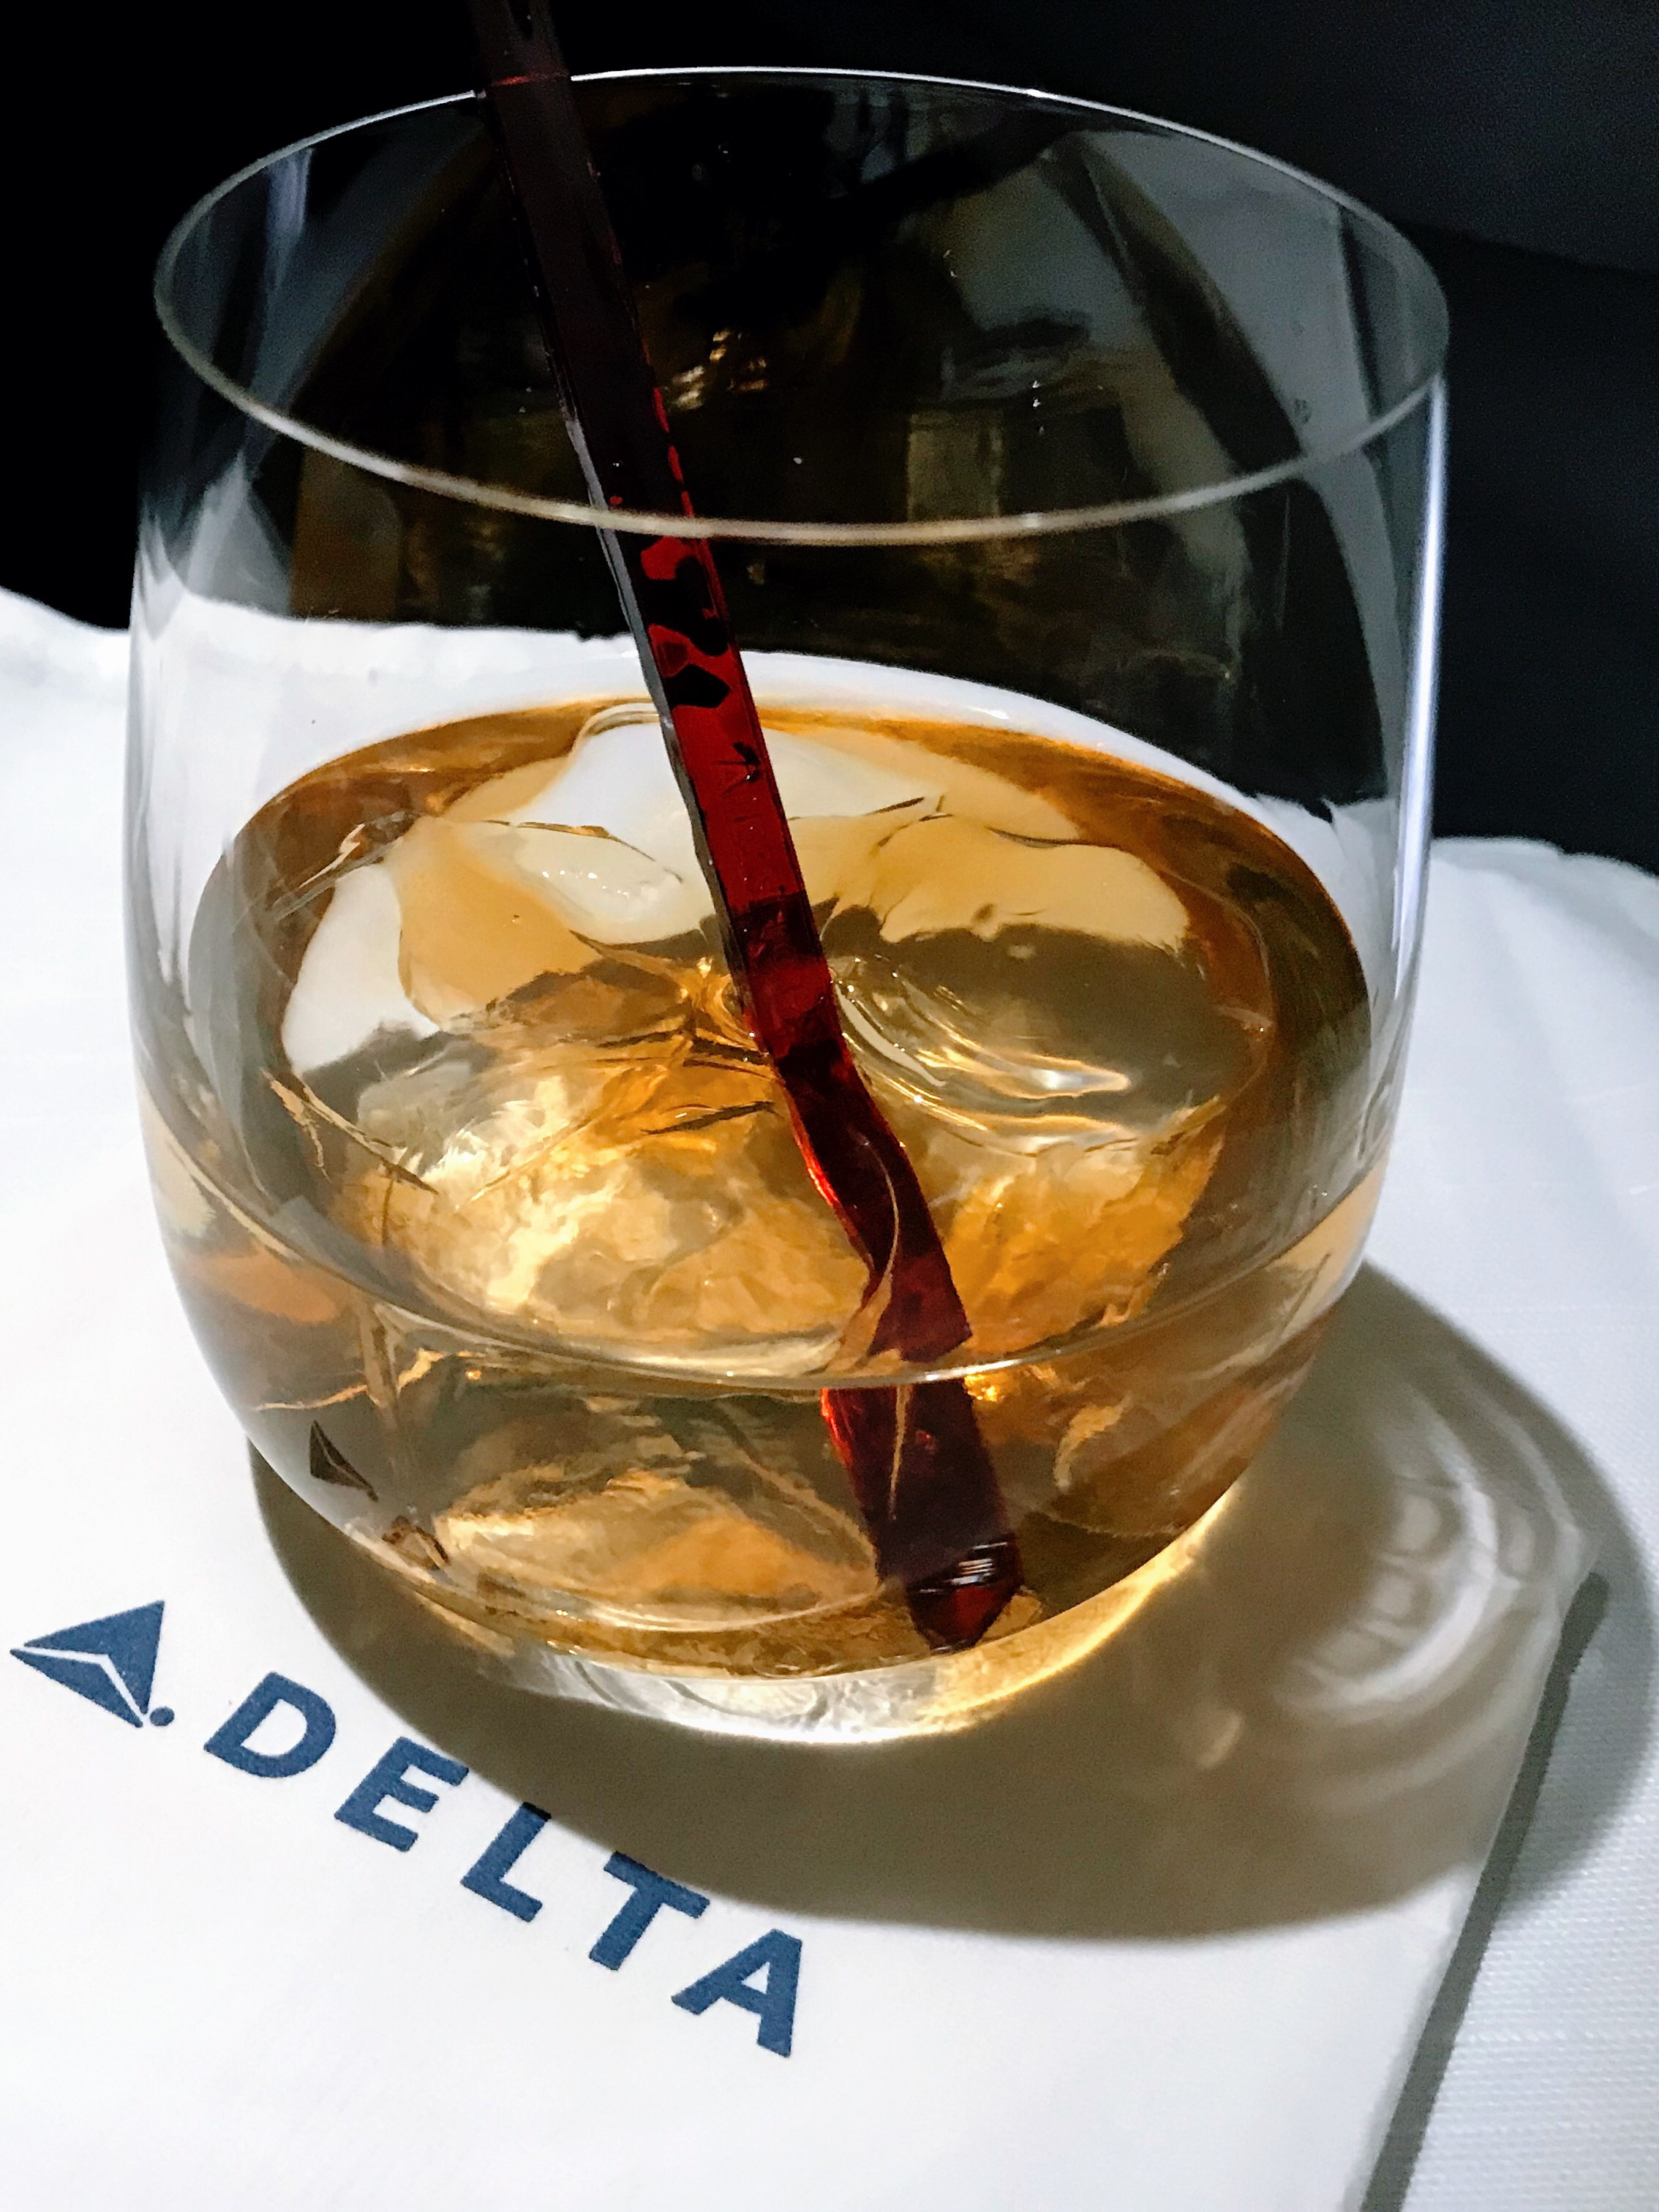 Cabin service began approximately 20 minutes after departure. Delta offers a wide selection of top shelf wines and spirits.